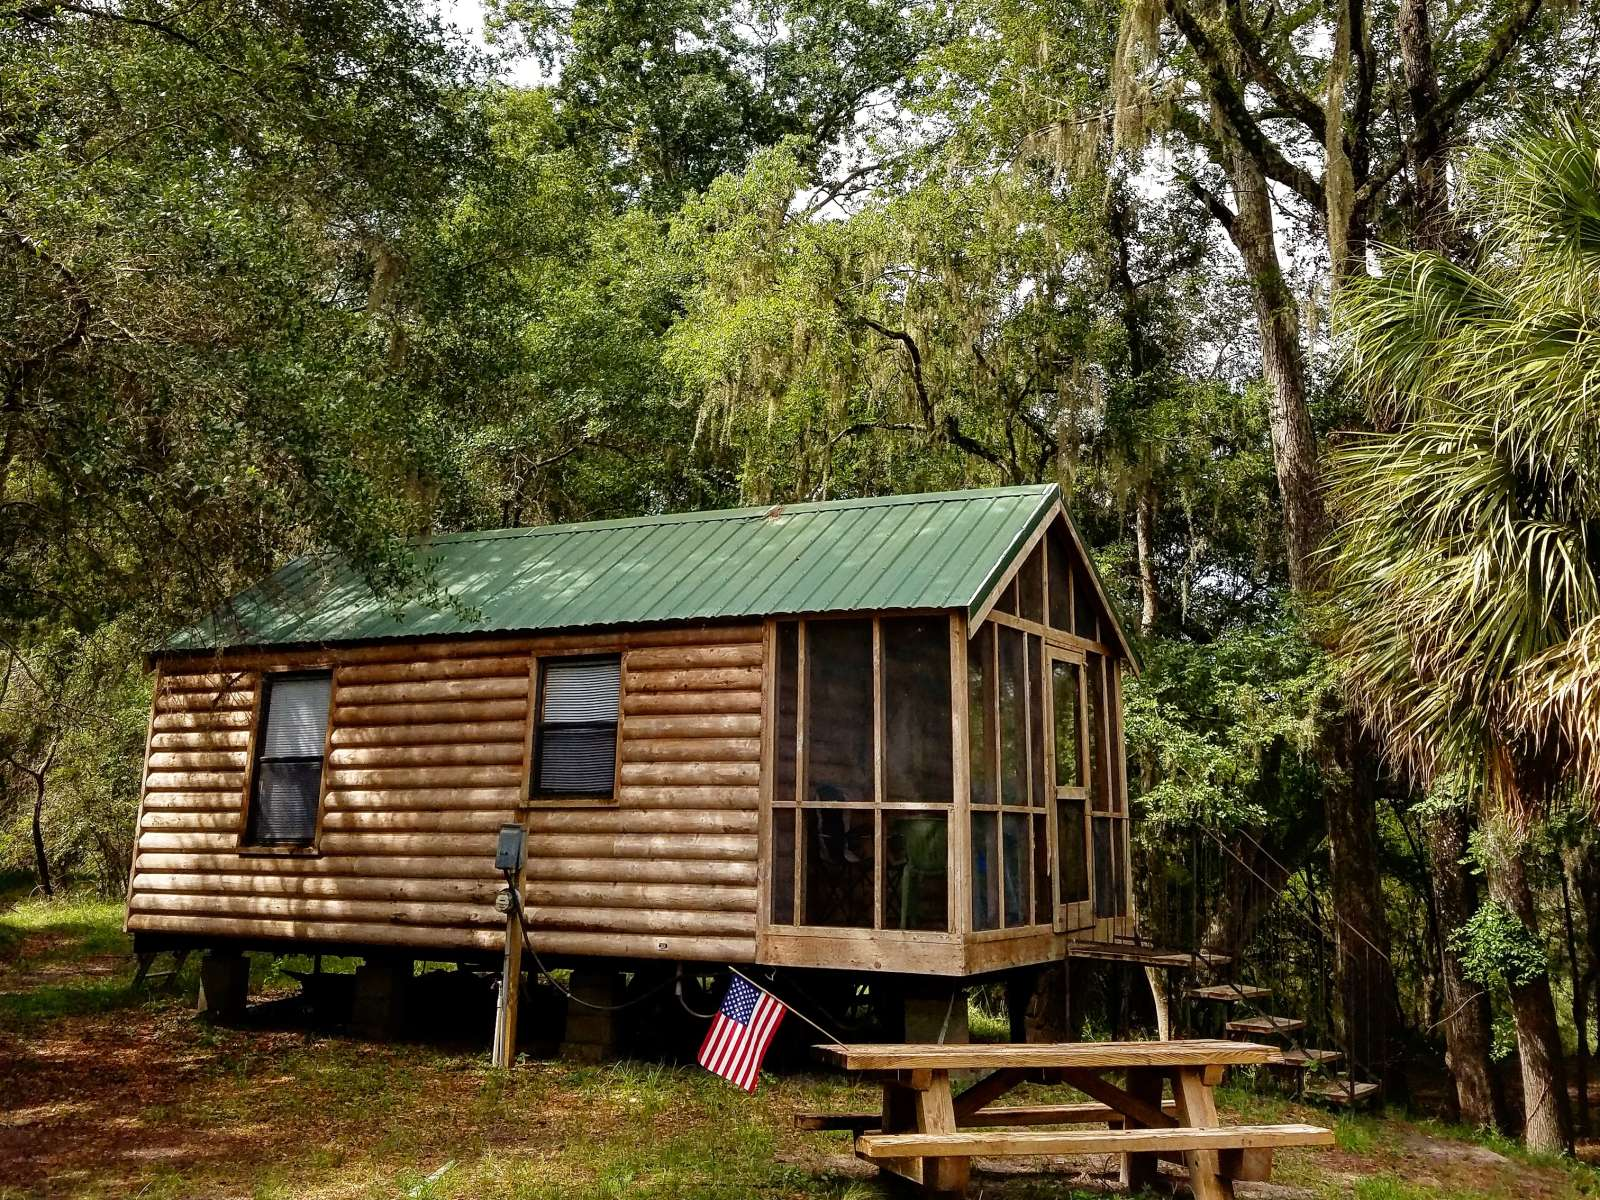 ... Suwannee River Cove Campground ...